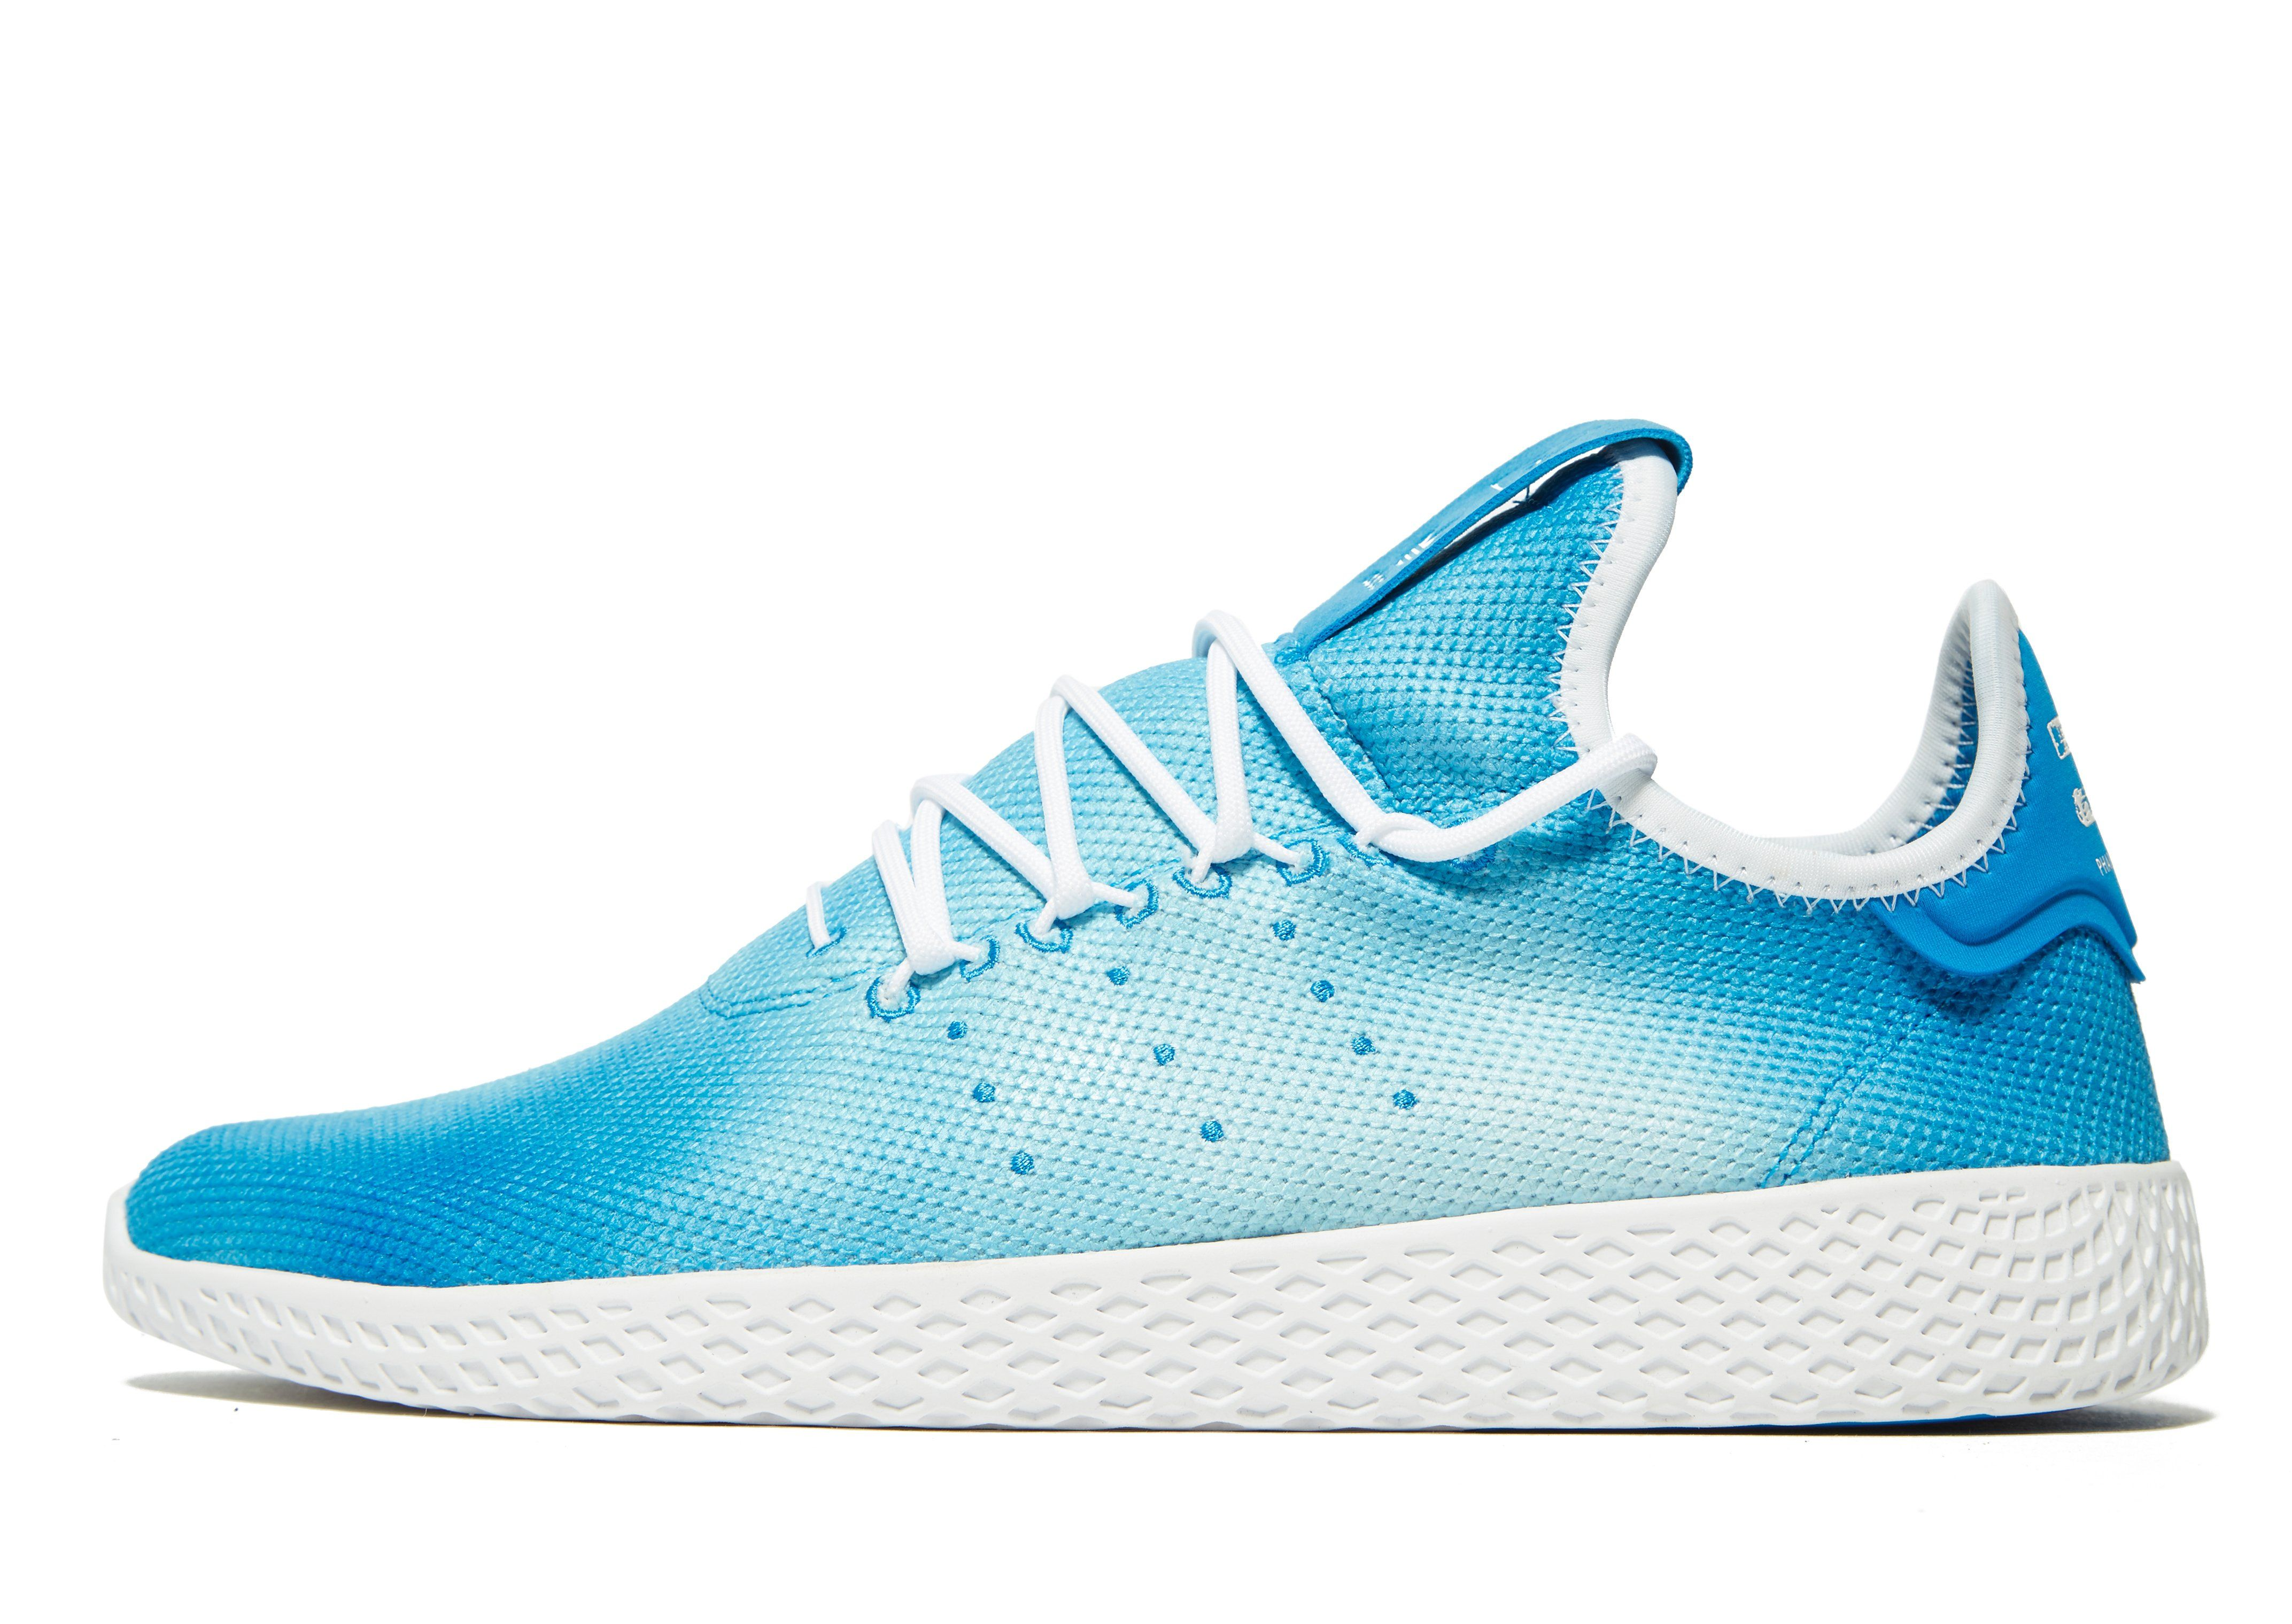 Envío Libre Exclusiva adidas Originals Pharrell Williams Tennis Hu Holi Blue Venta Barata De Pago Con Visa xHiofbwVM